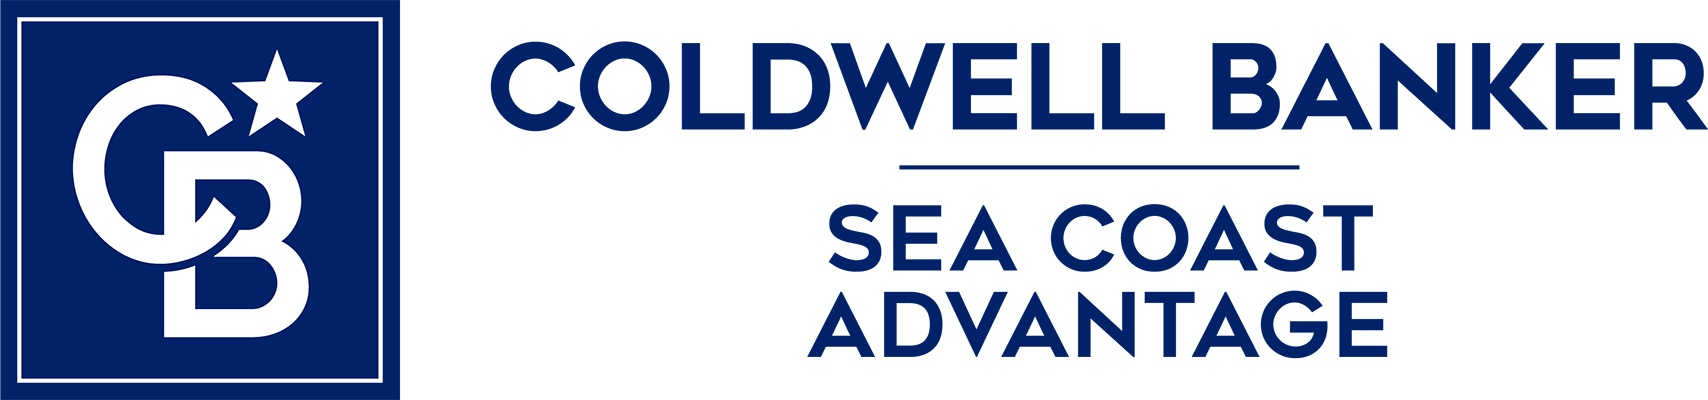 Jimmy Wilkie - Coldwell Banker Sea Coast Advantage Realty